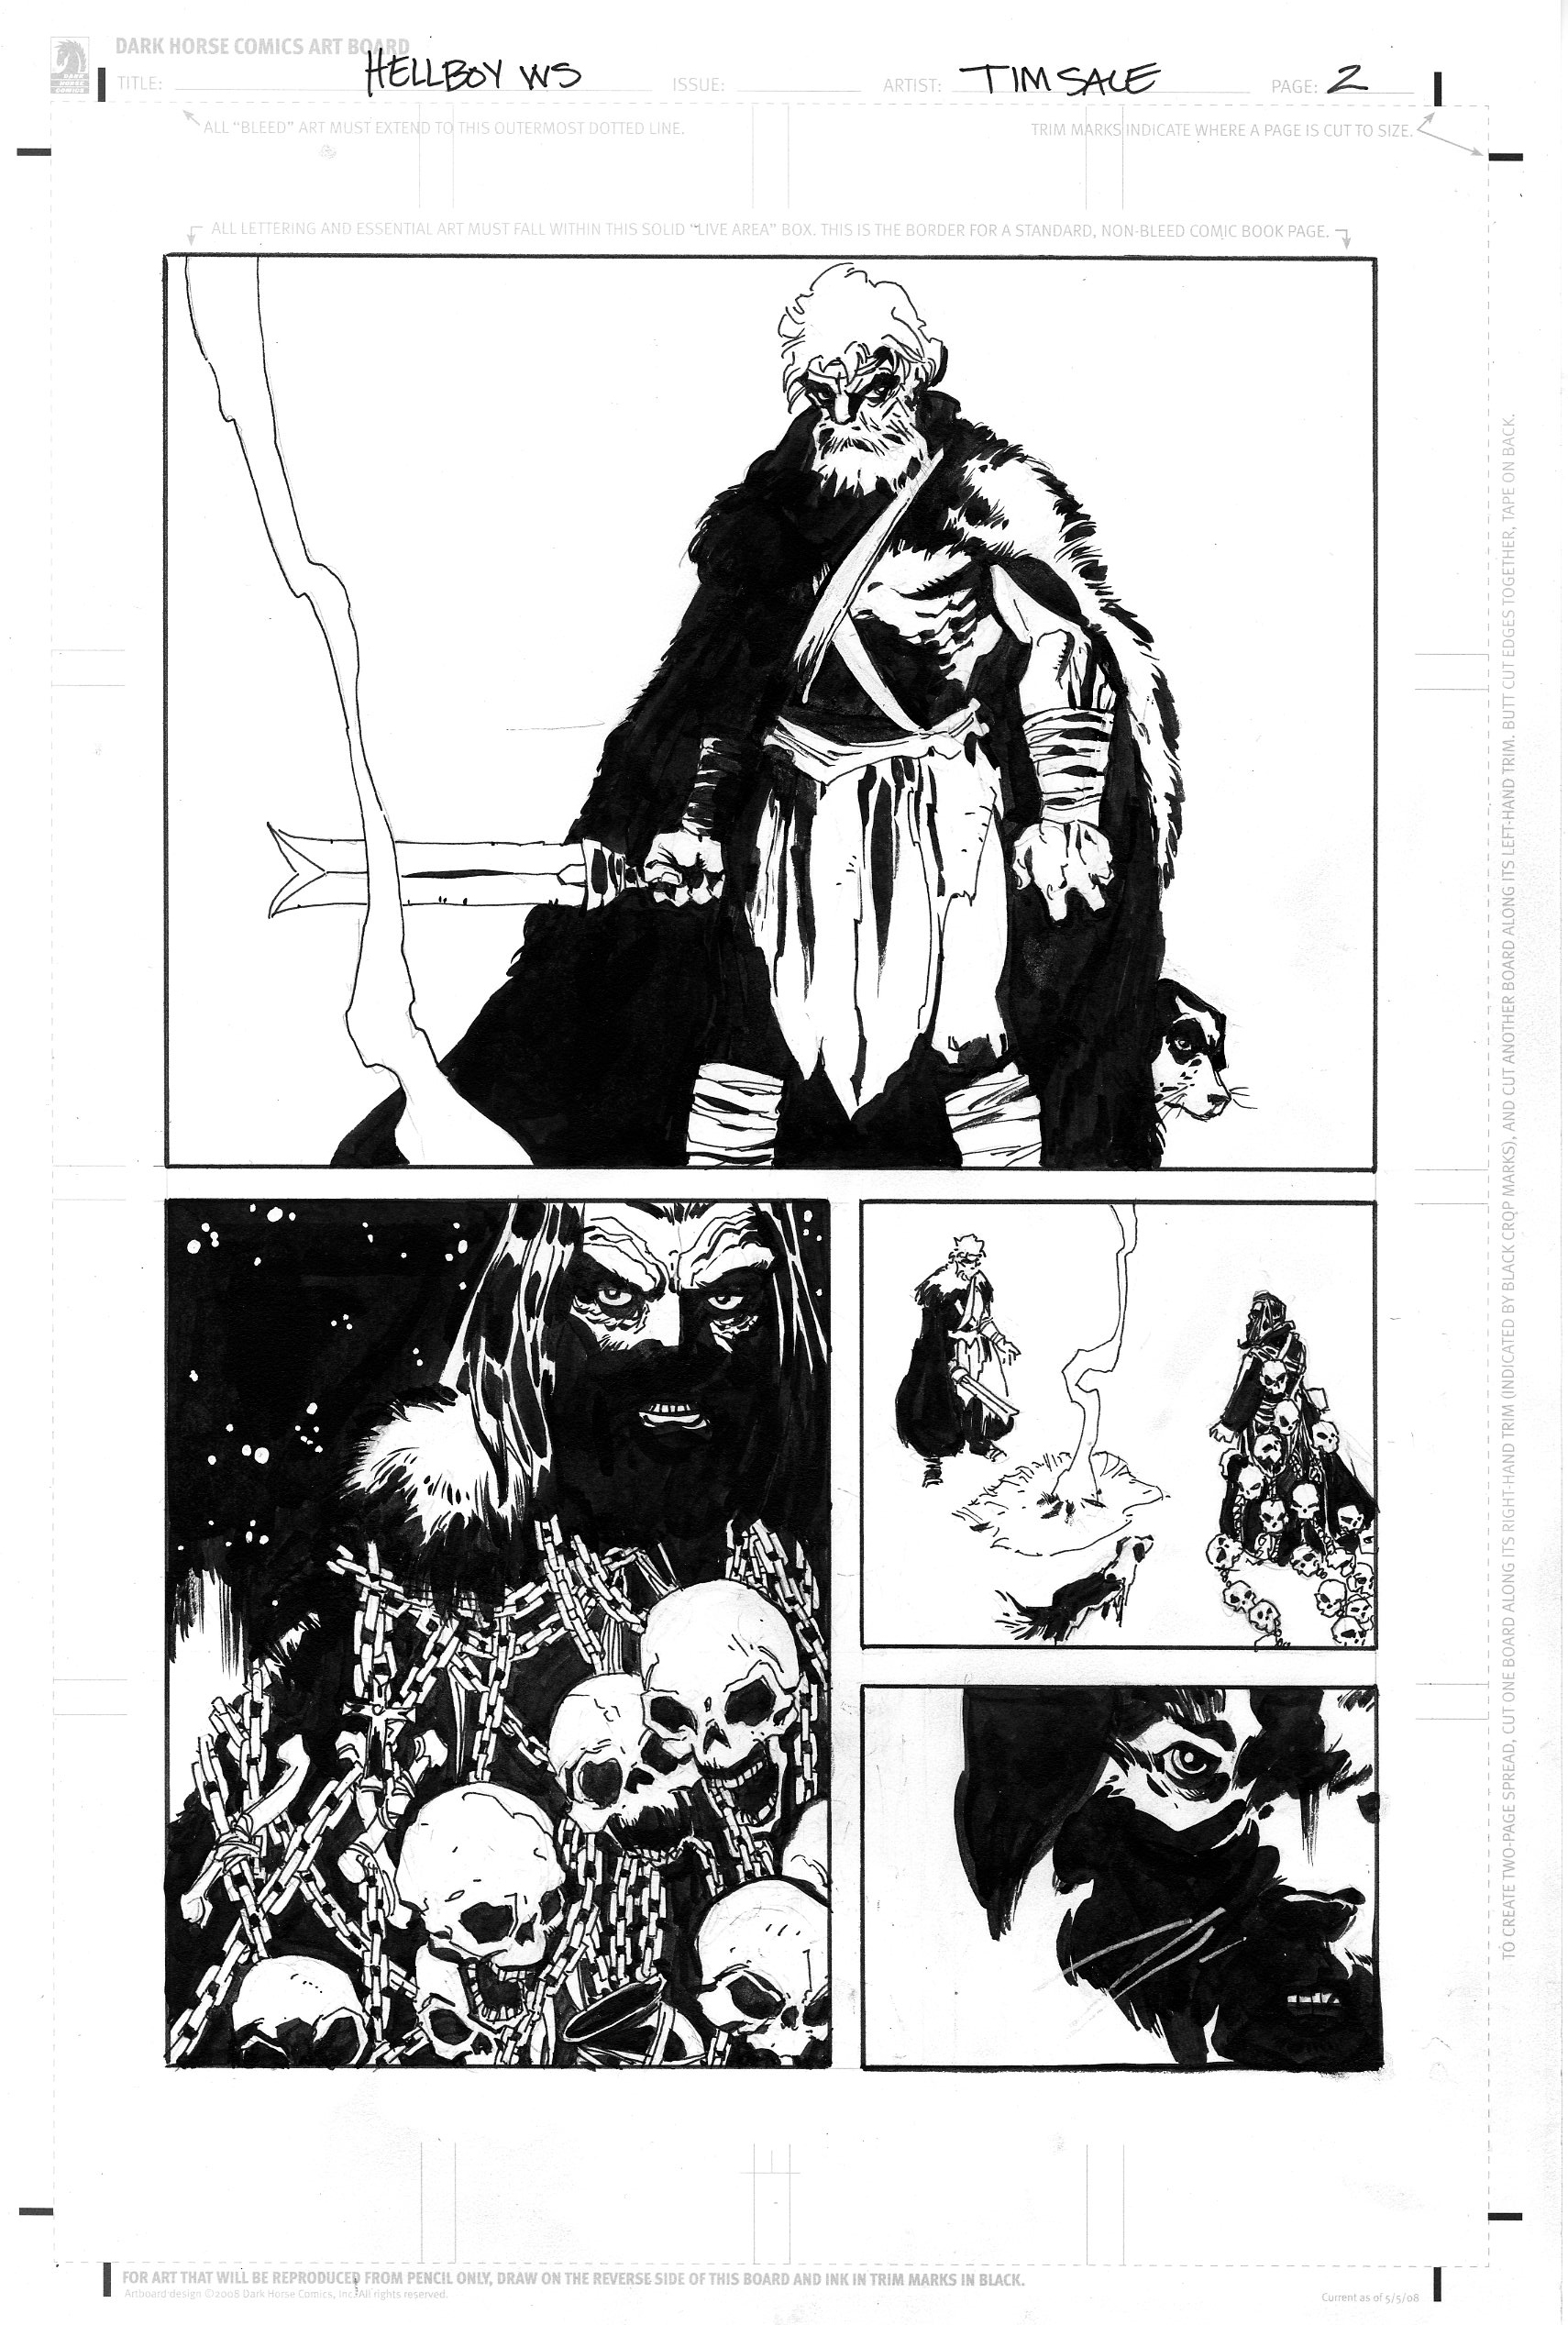 HELLBOY WS-inks002